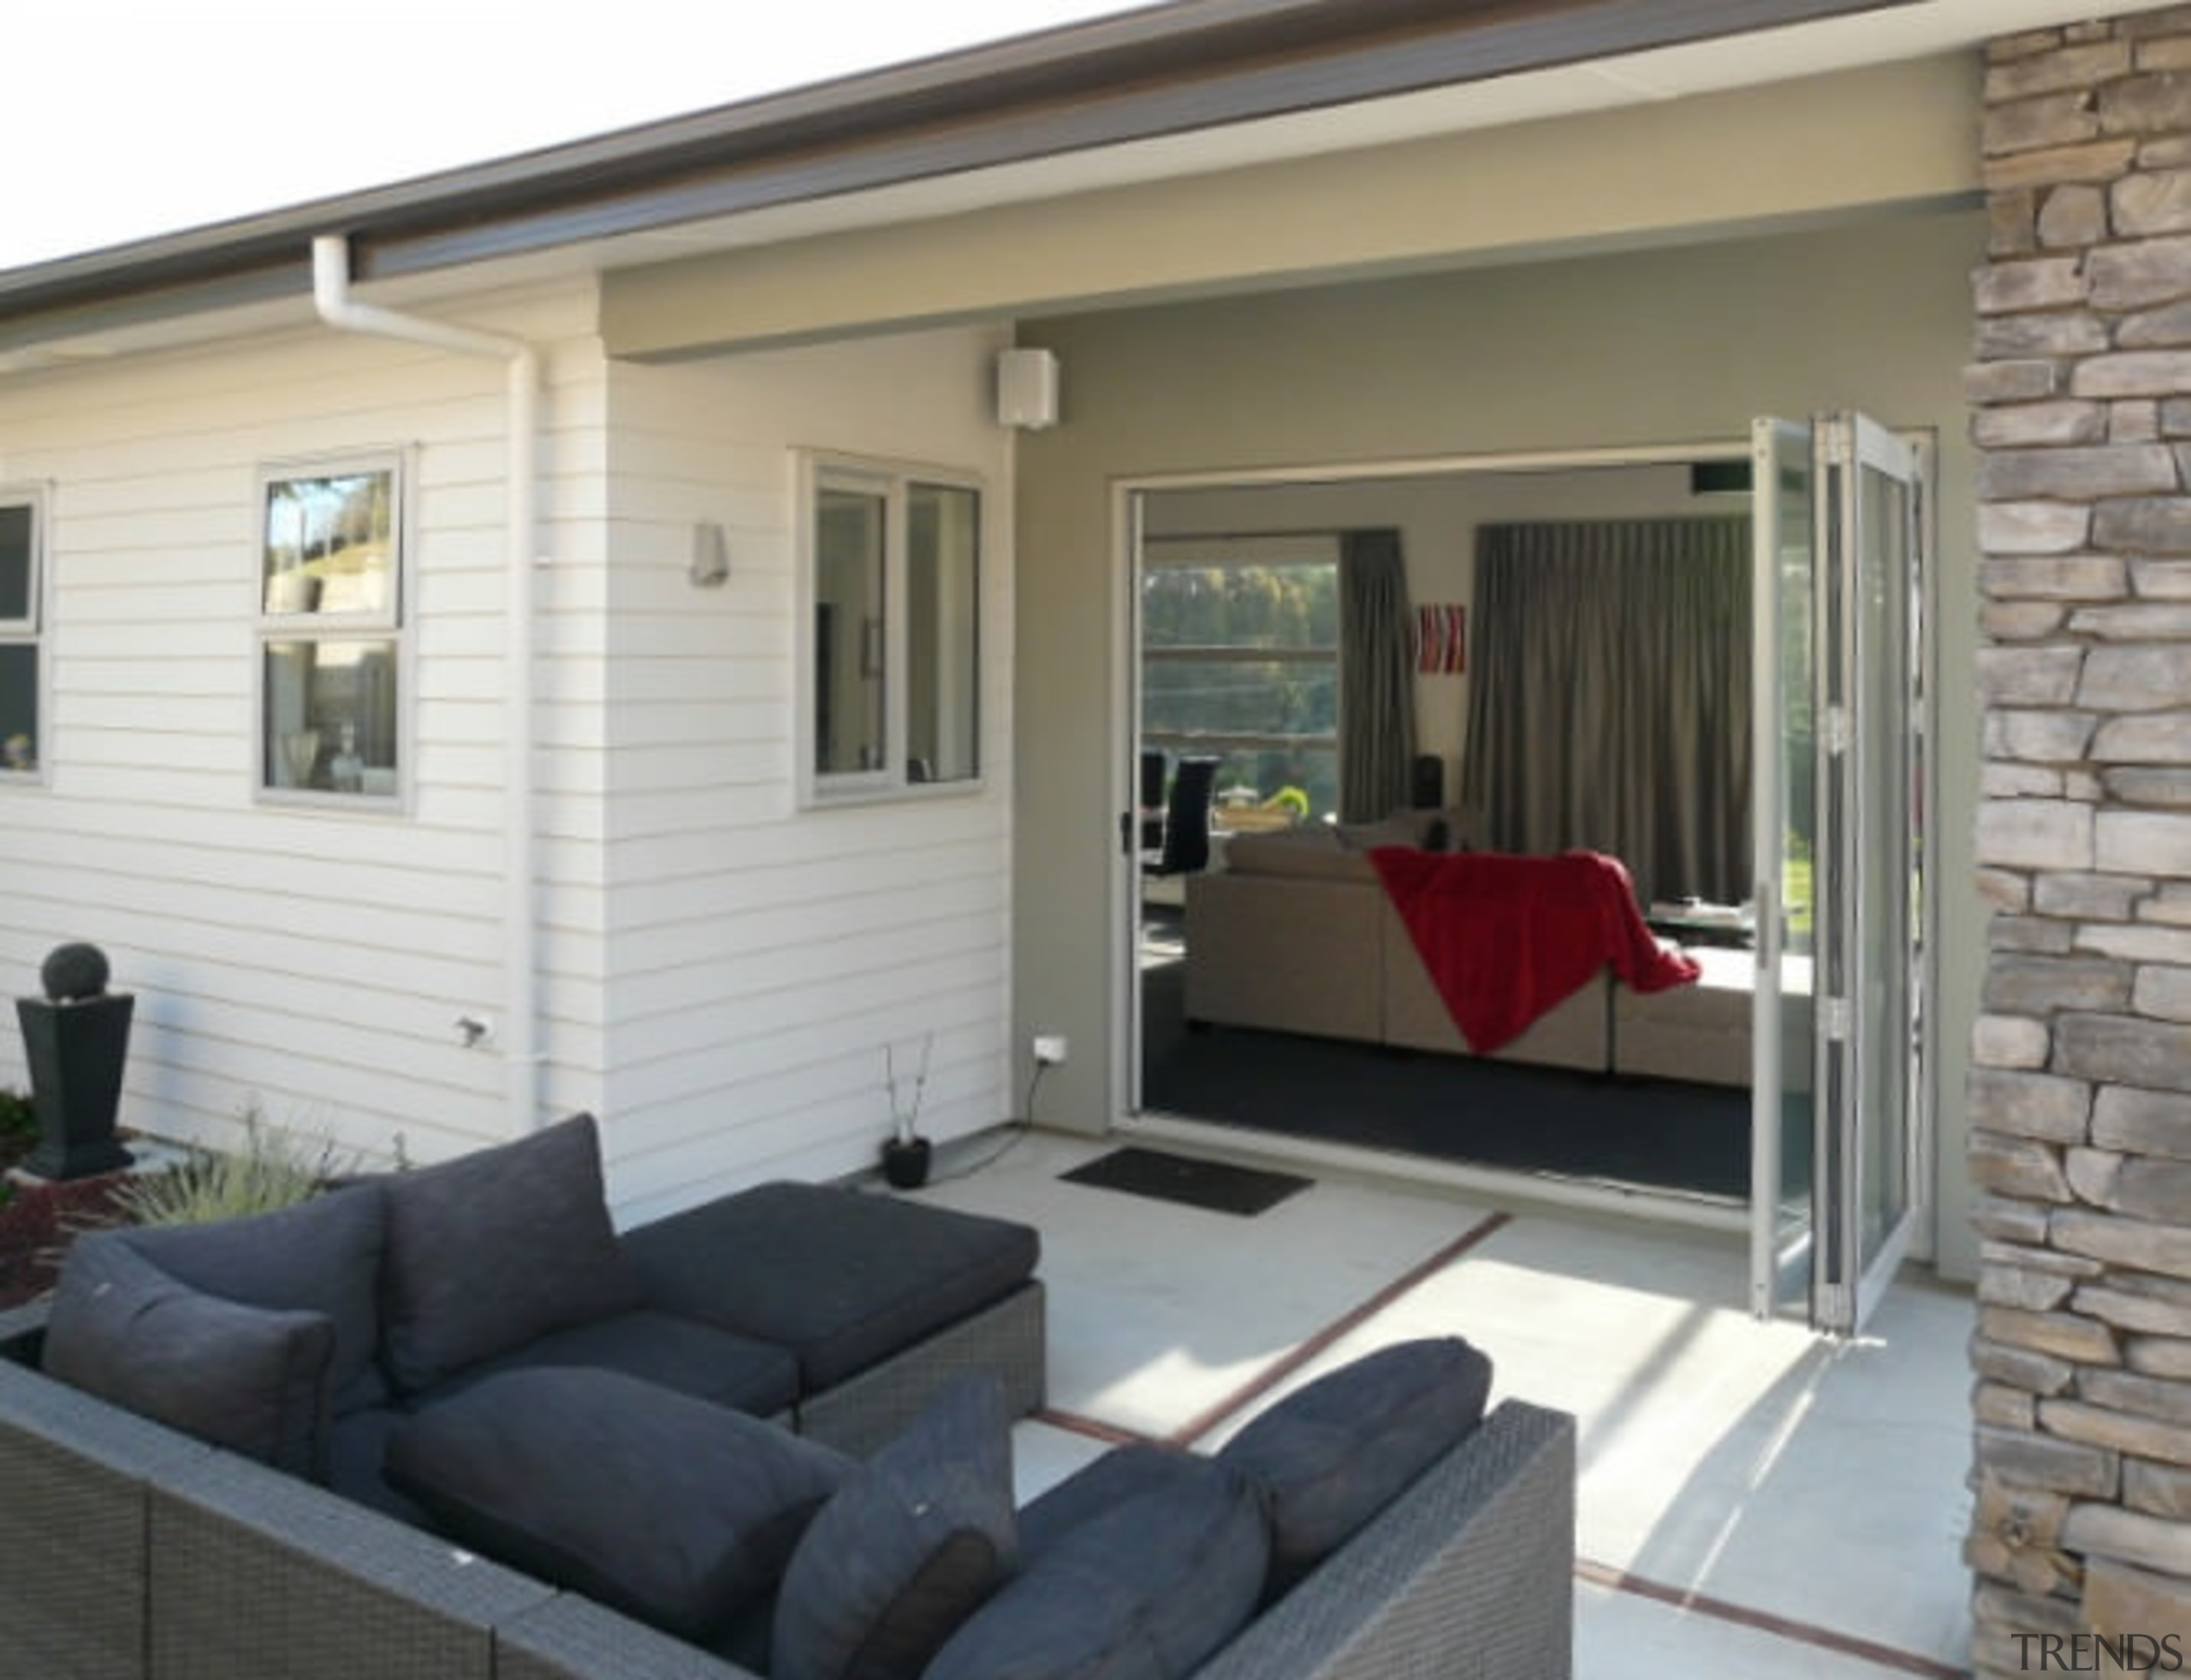 As this house shows, low-upkeep Palliside cladding never door, home, house, interior design, living room, porch, property, real estate, siding, window, gray